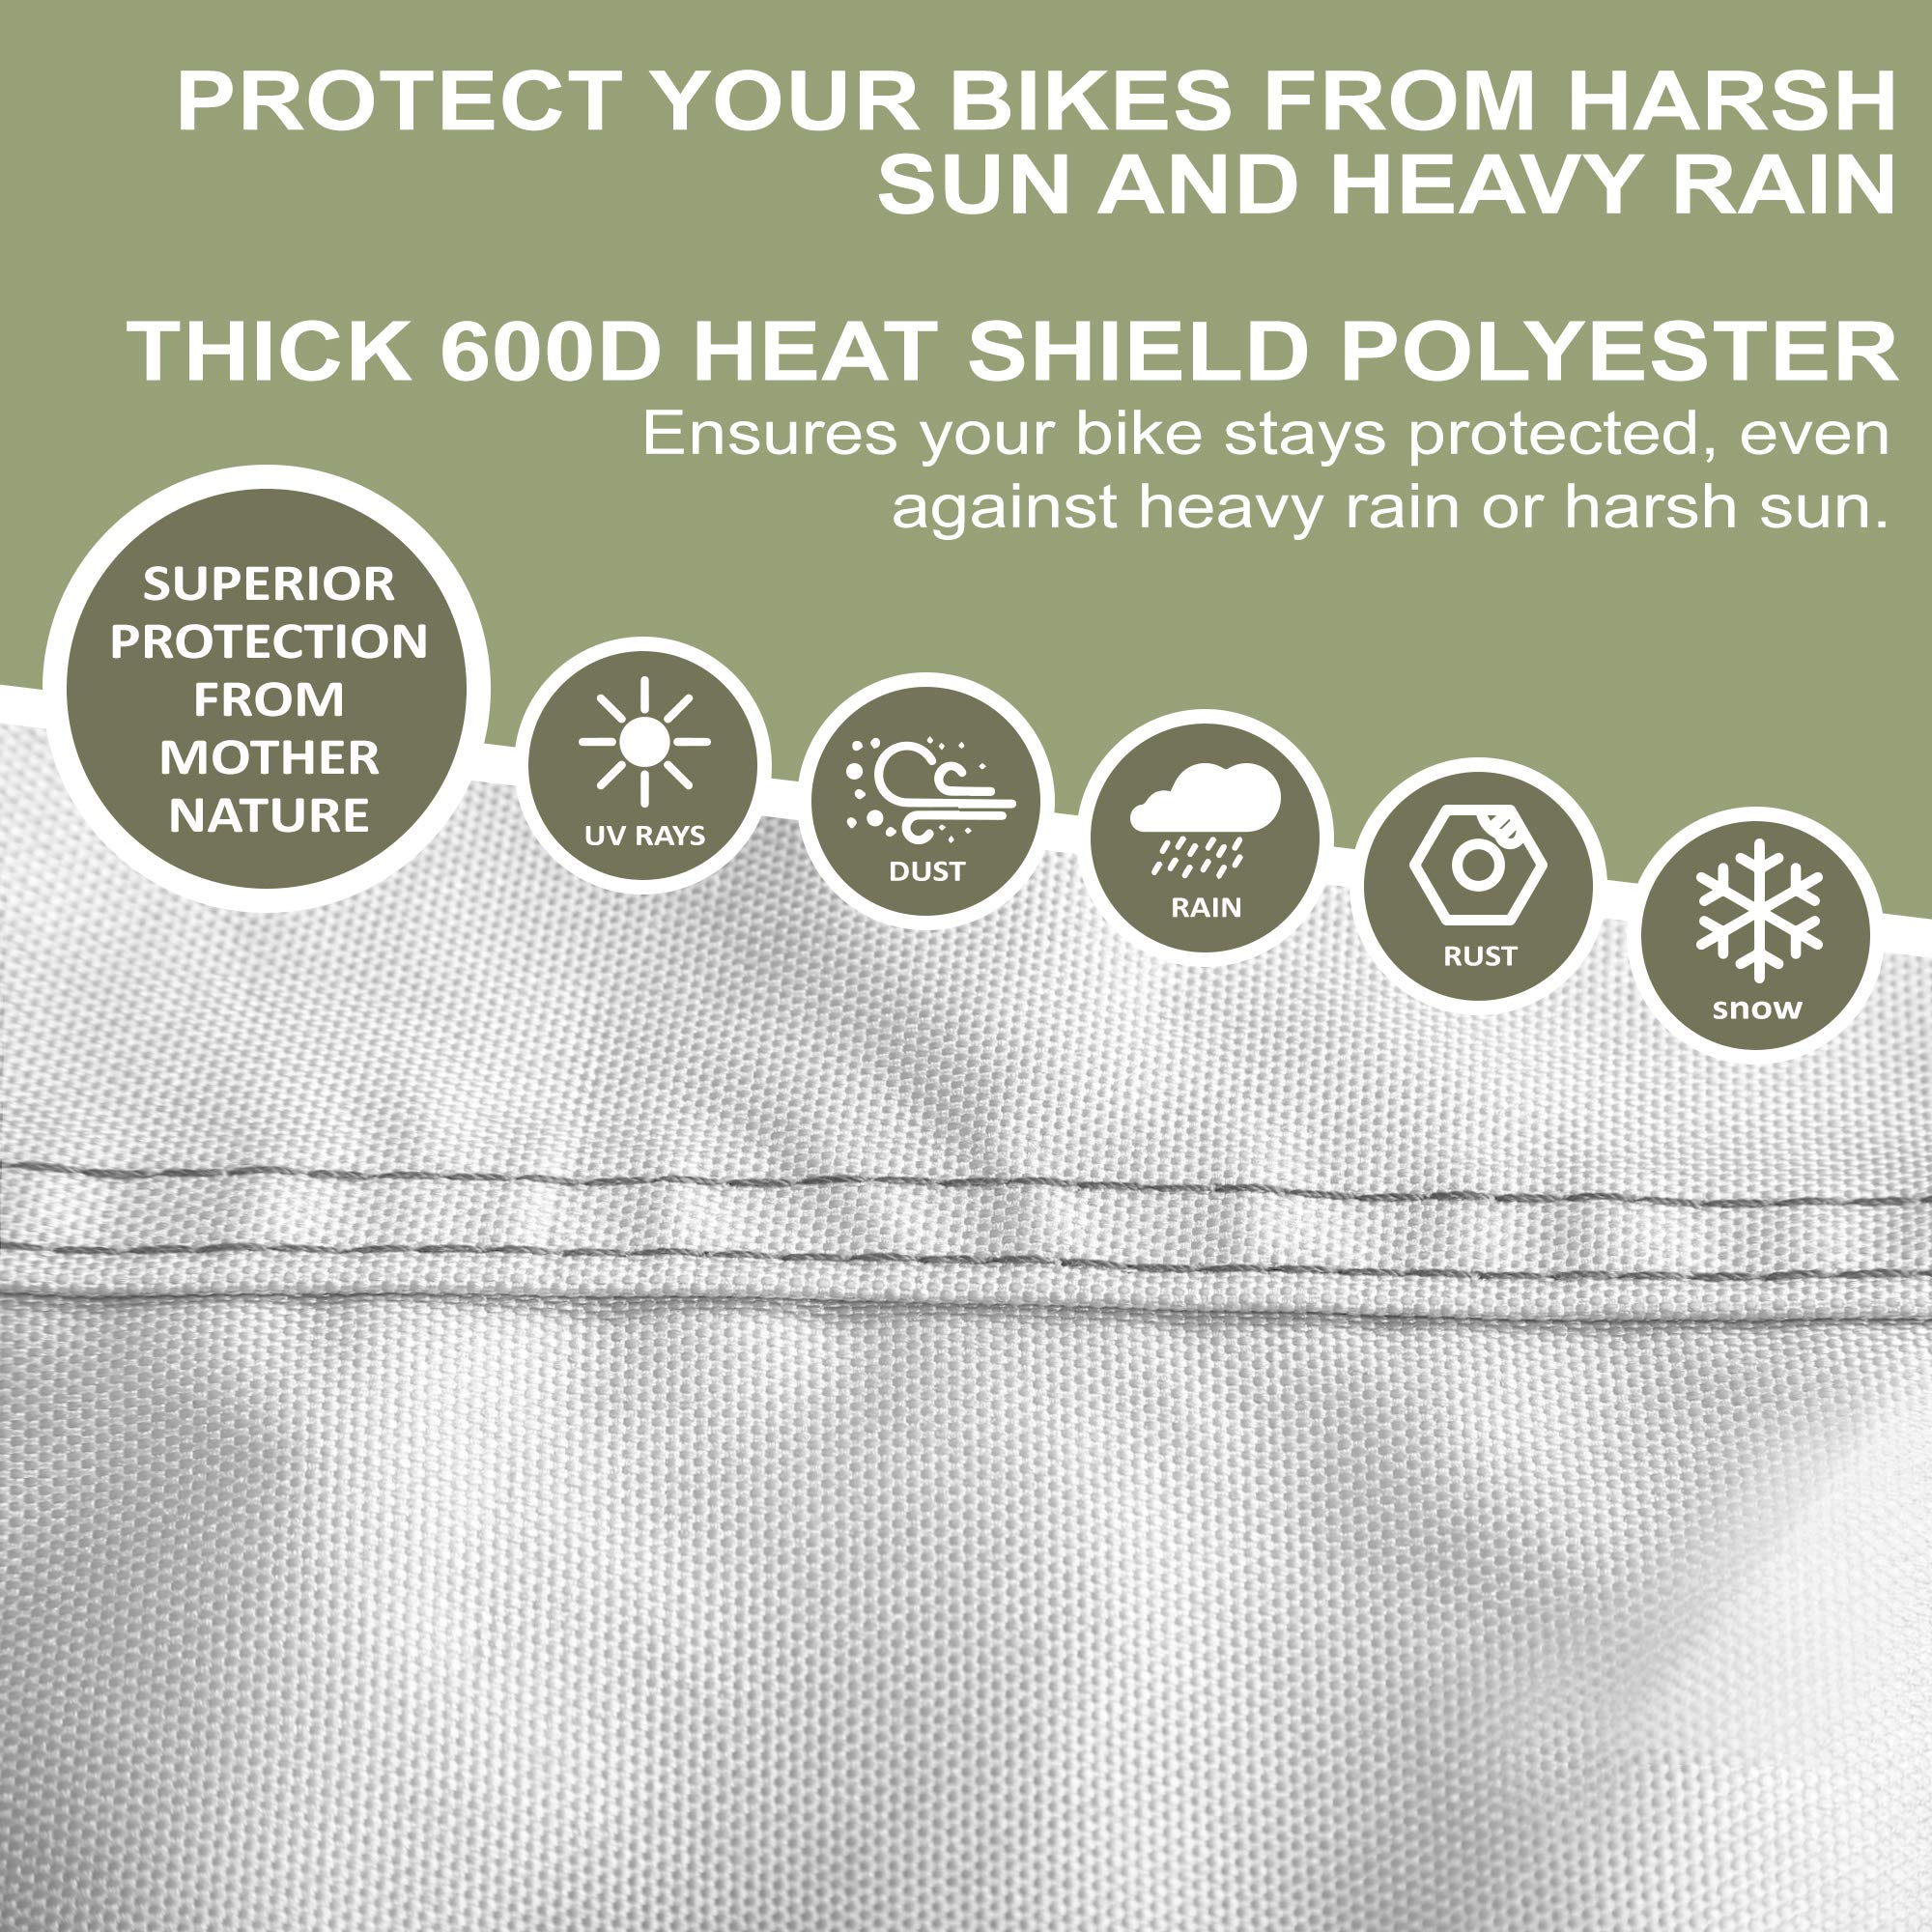 YardStash Bicycle Cover XL: Extra Large Size for Beach Cruiser Cover, 29er Mountain Bike Cover, Electric Bike Cover, Multiple Kids' Bike Cover and Cover for Bikes with Baskets, Child Seats or Racks by YardStash (Image #5)